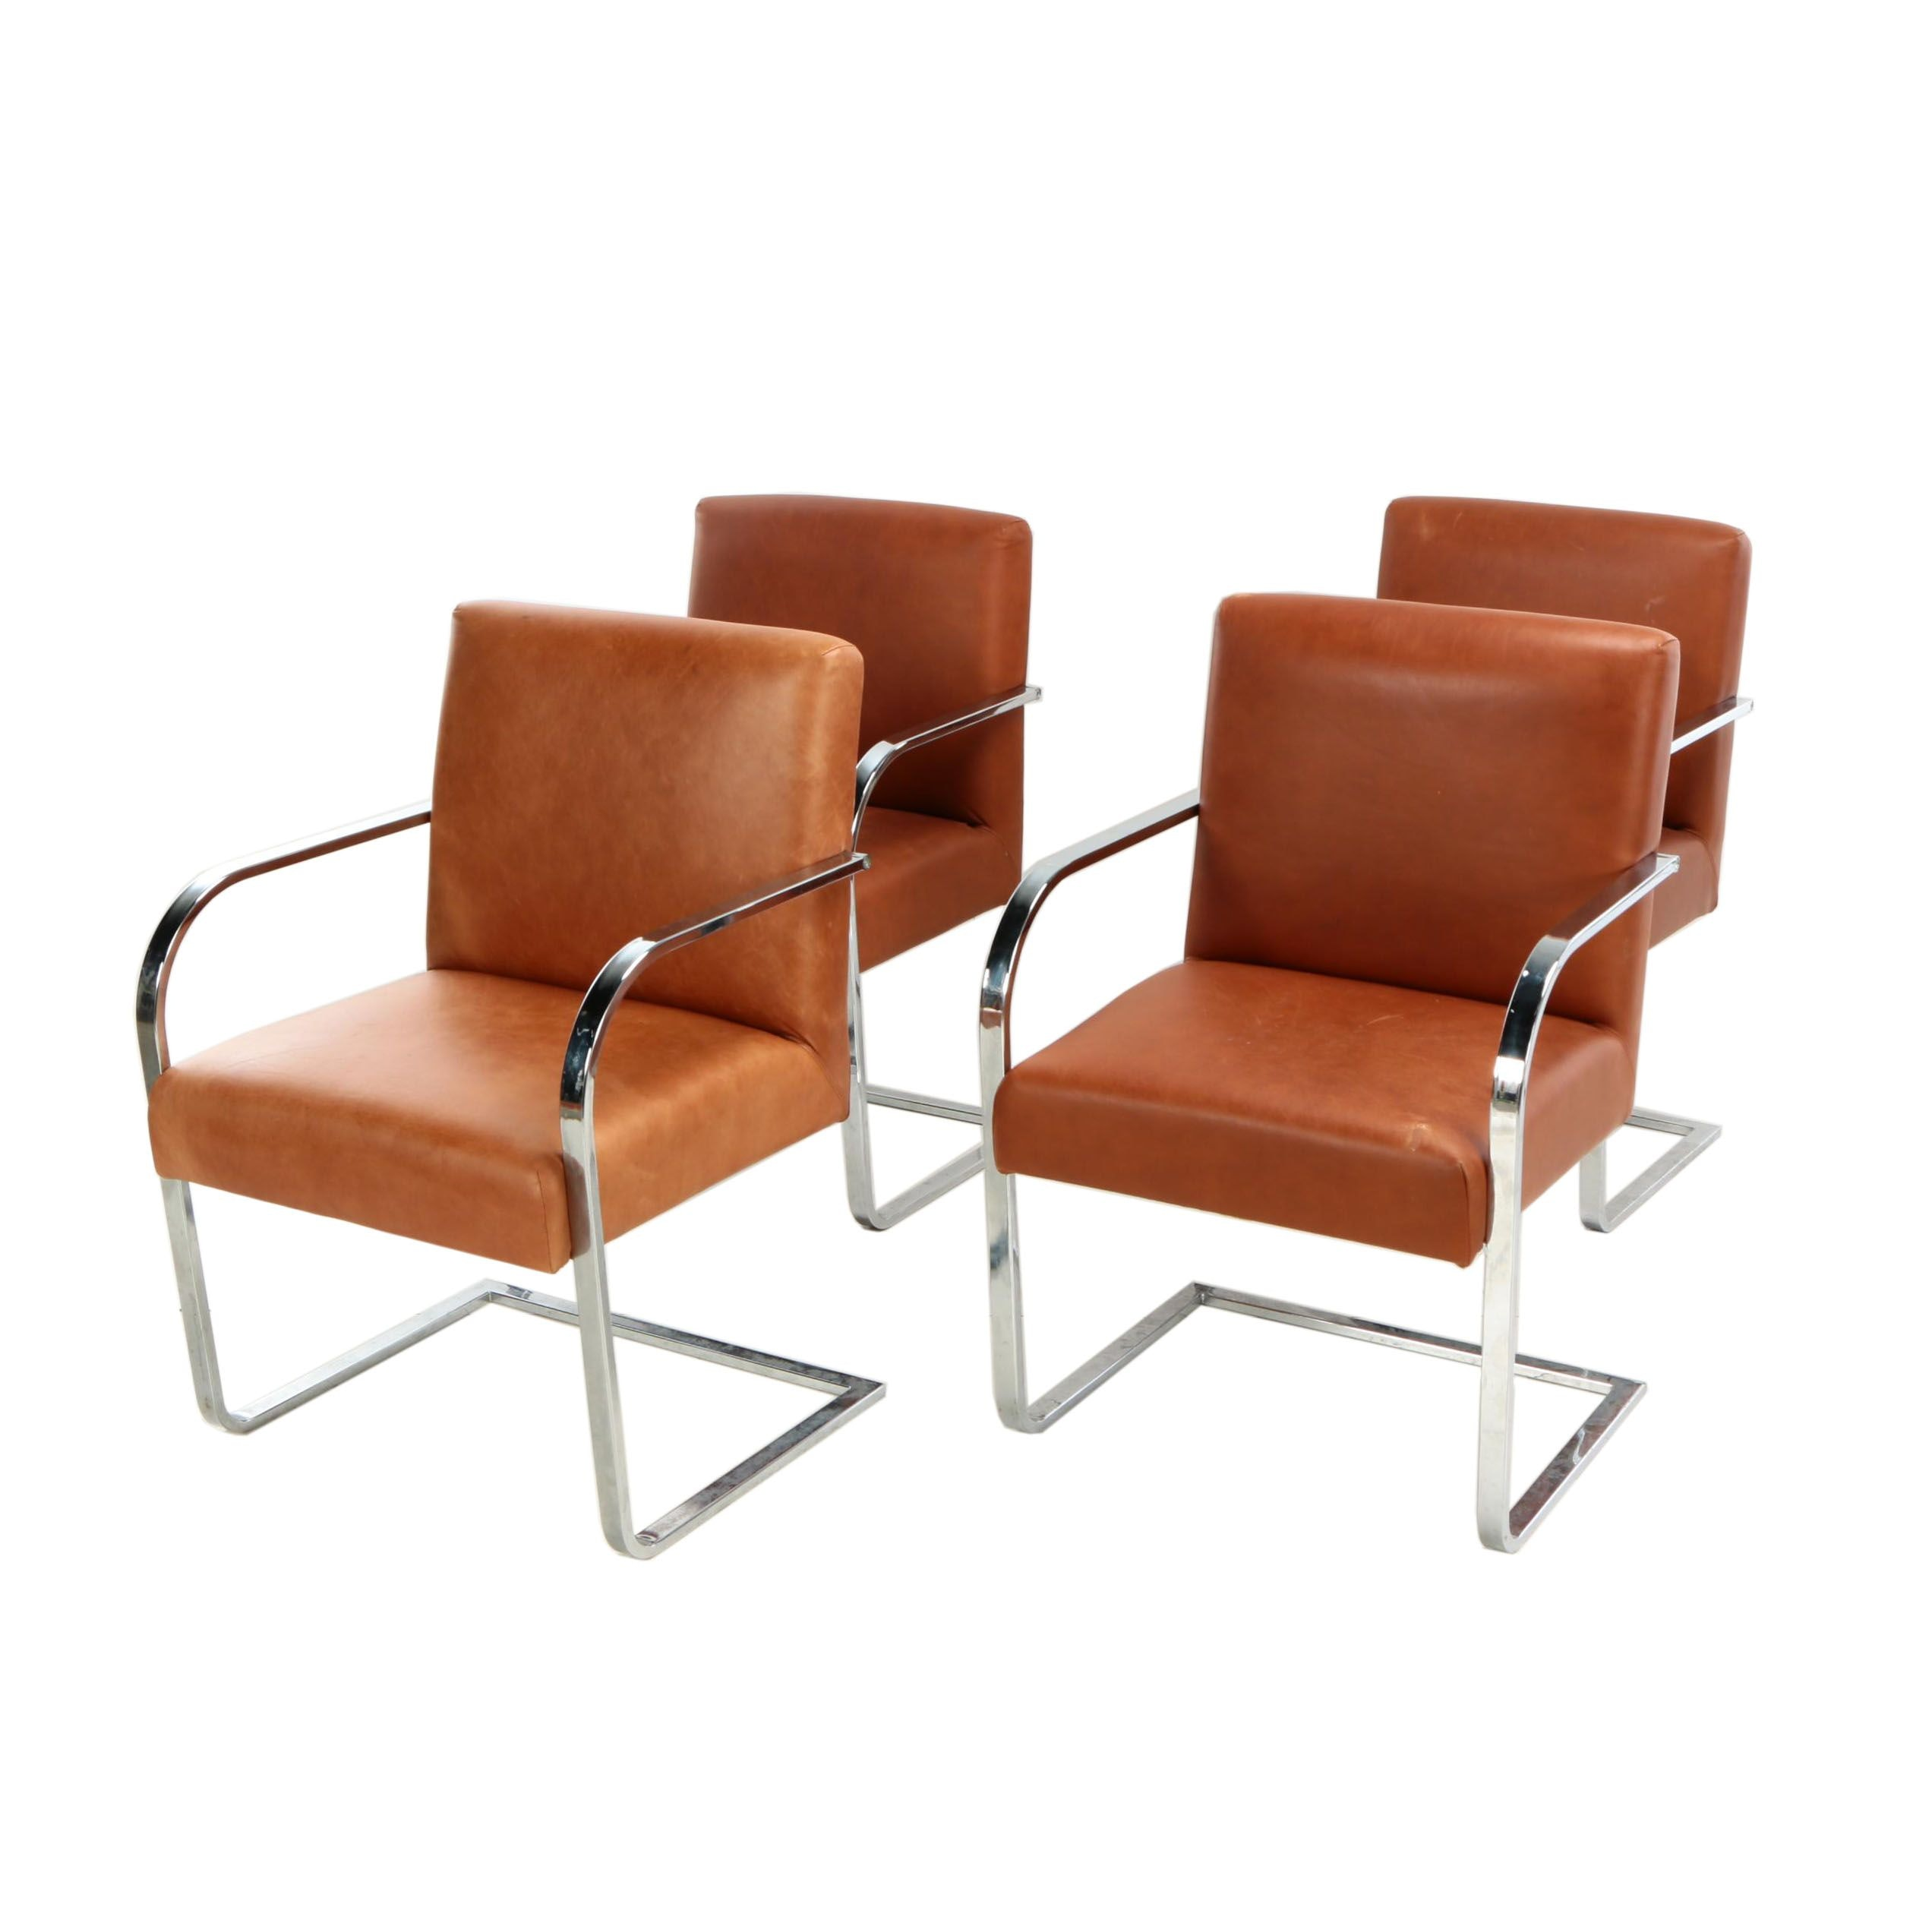 Set of Williams-Sonoma Leather Cantilever Armchairs